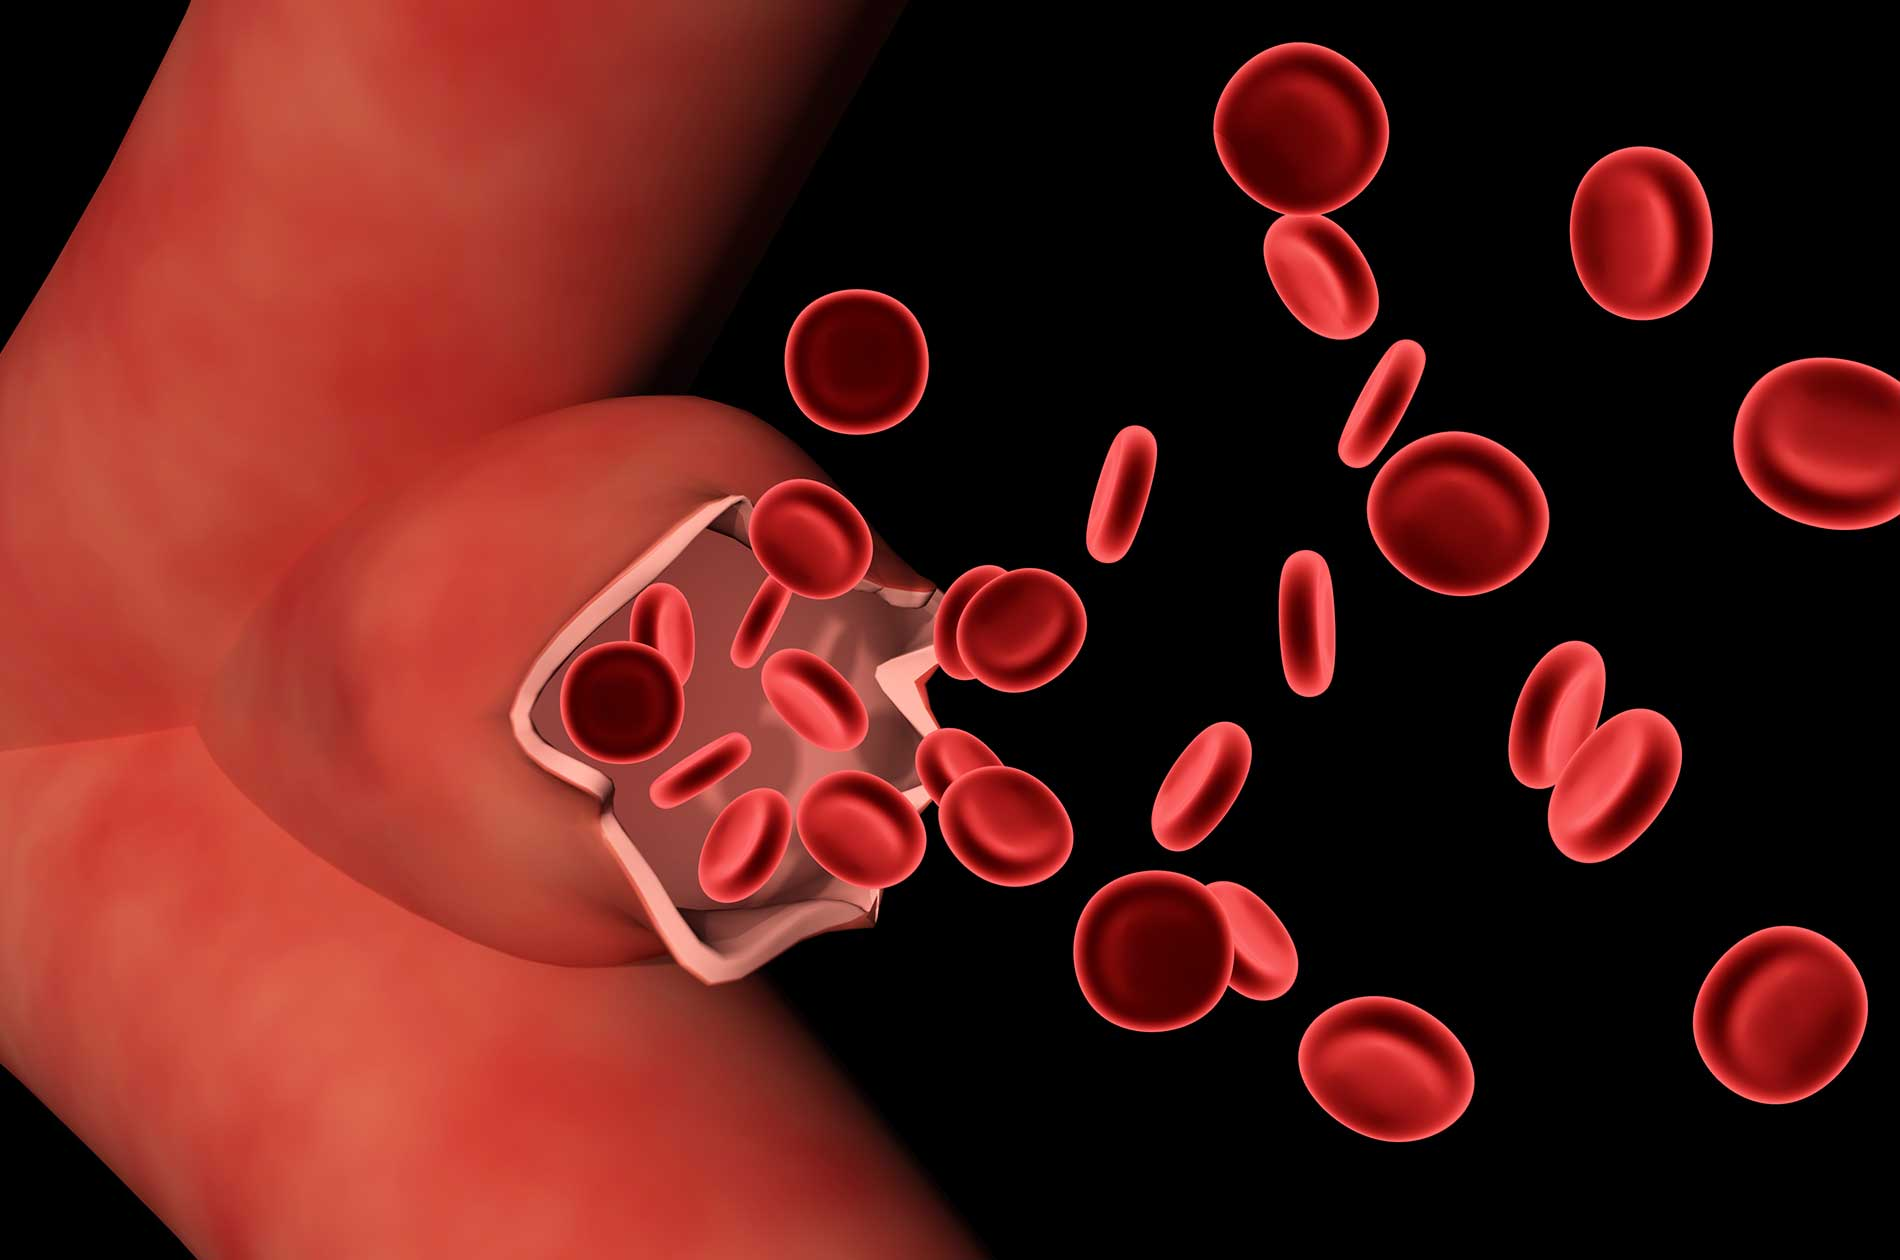 Red blood cells after aortic aneurysm